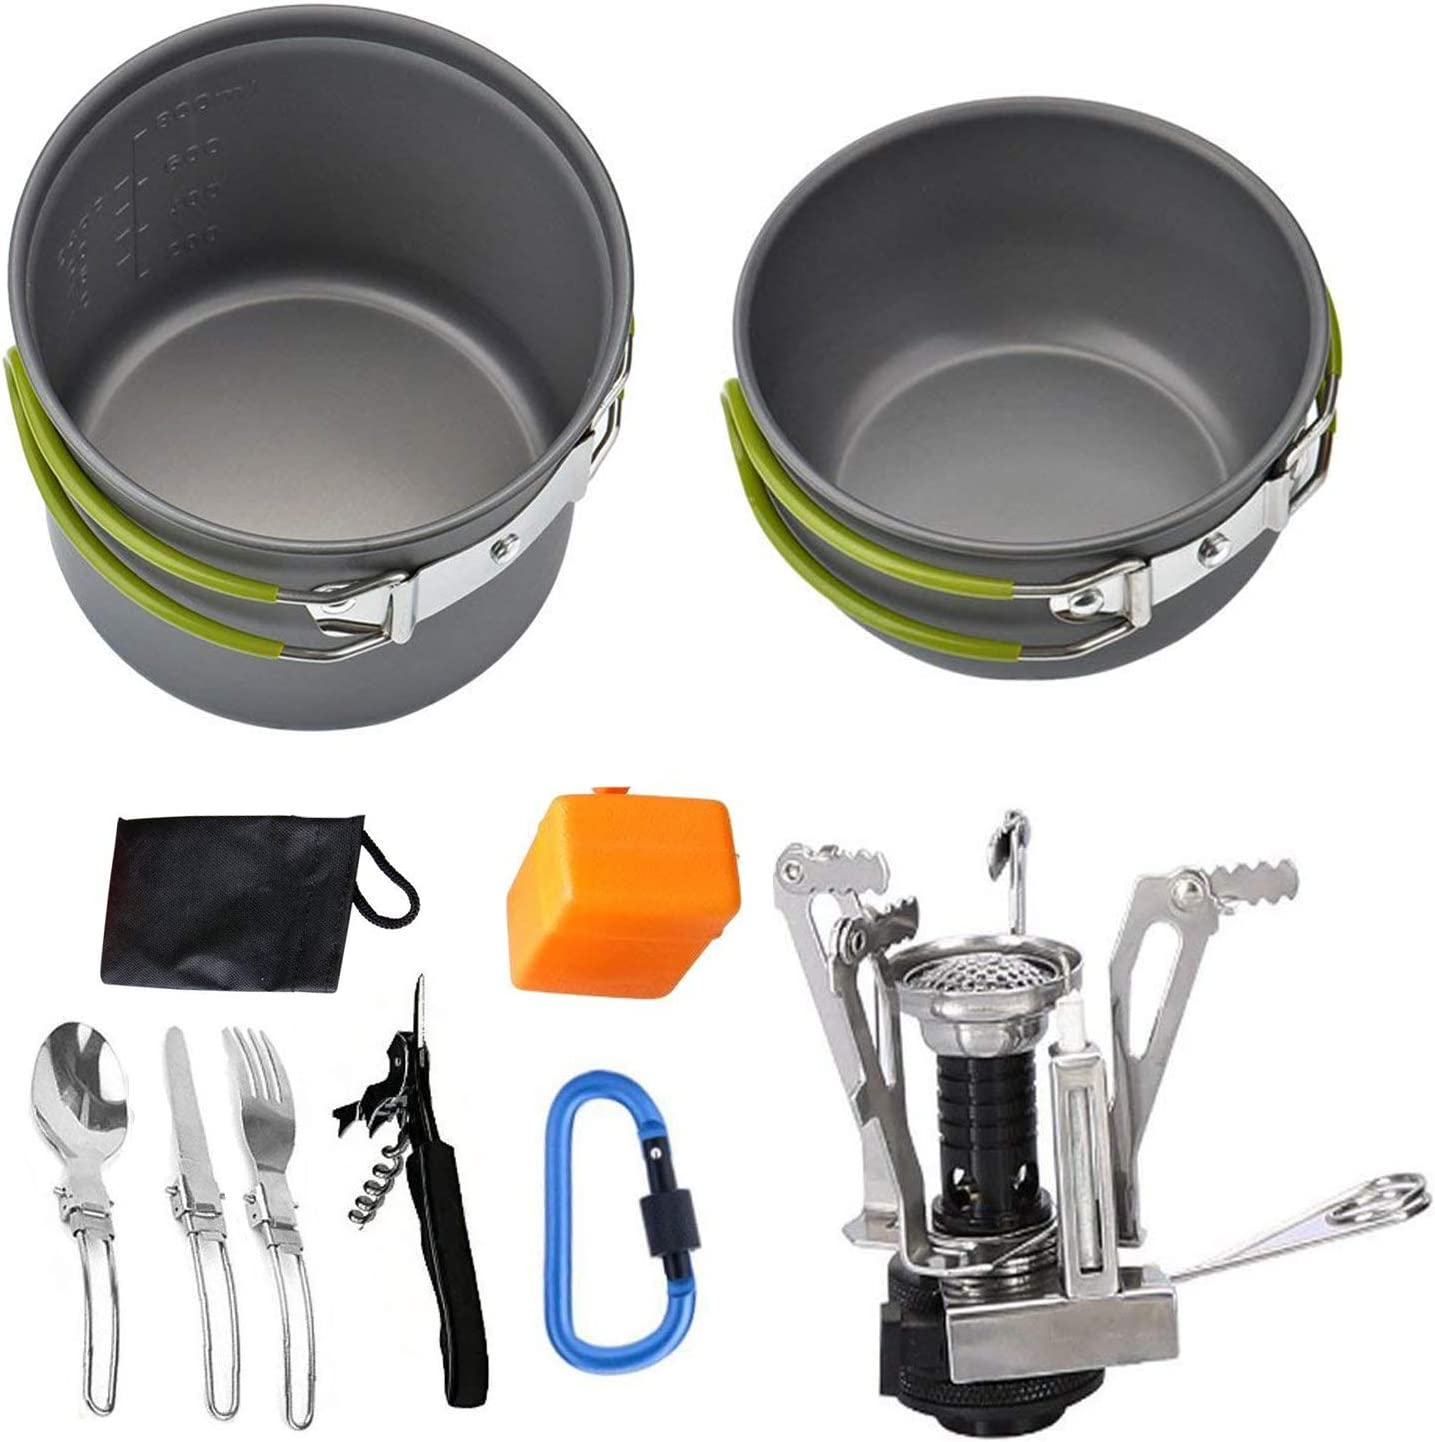 Camping Cookware Mess Kit Backpacking Gear Hiking Outdoors Cooking Equipment